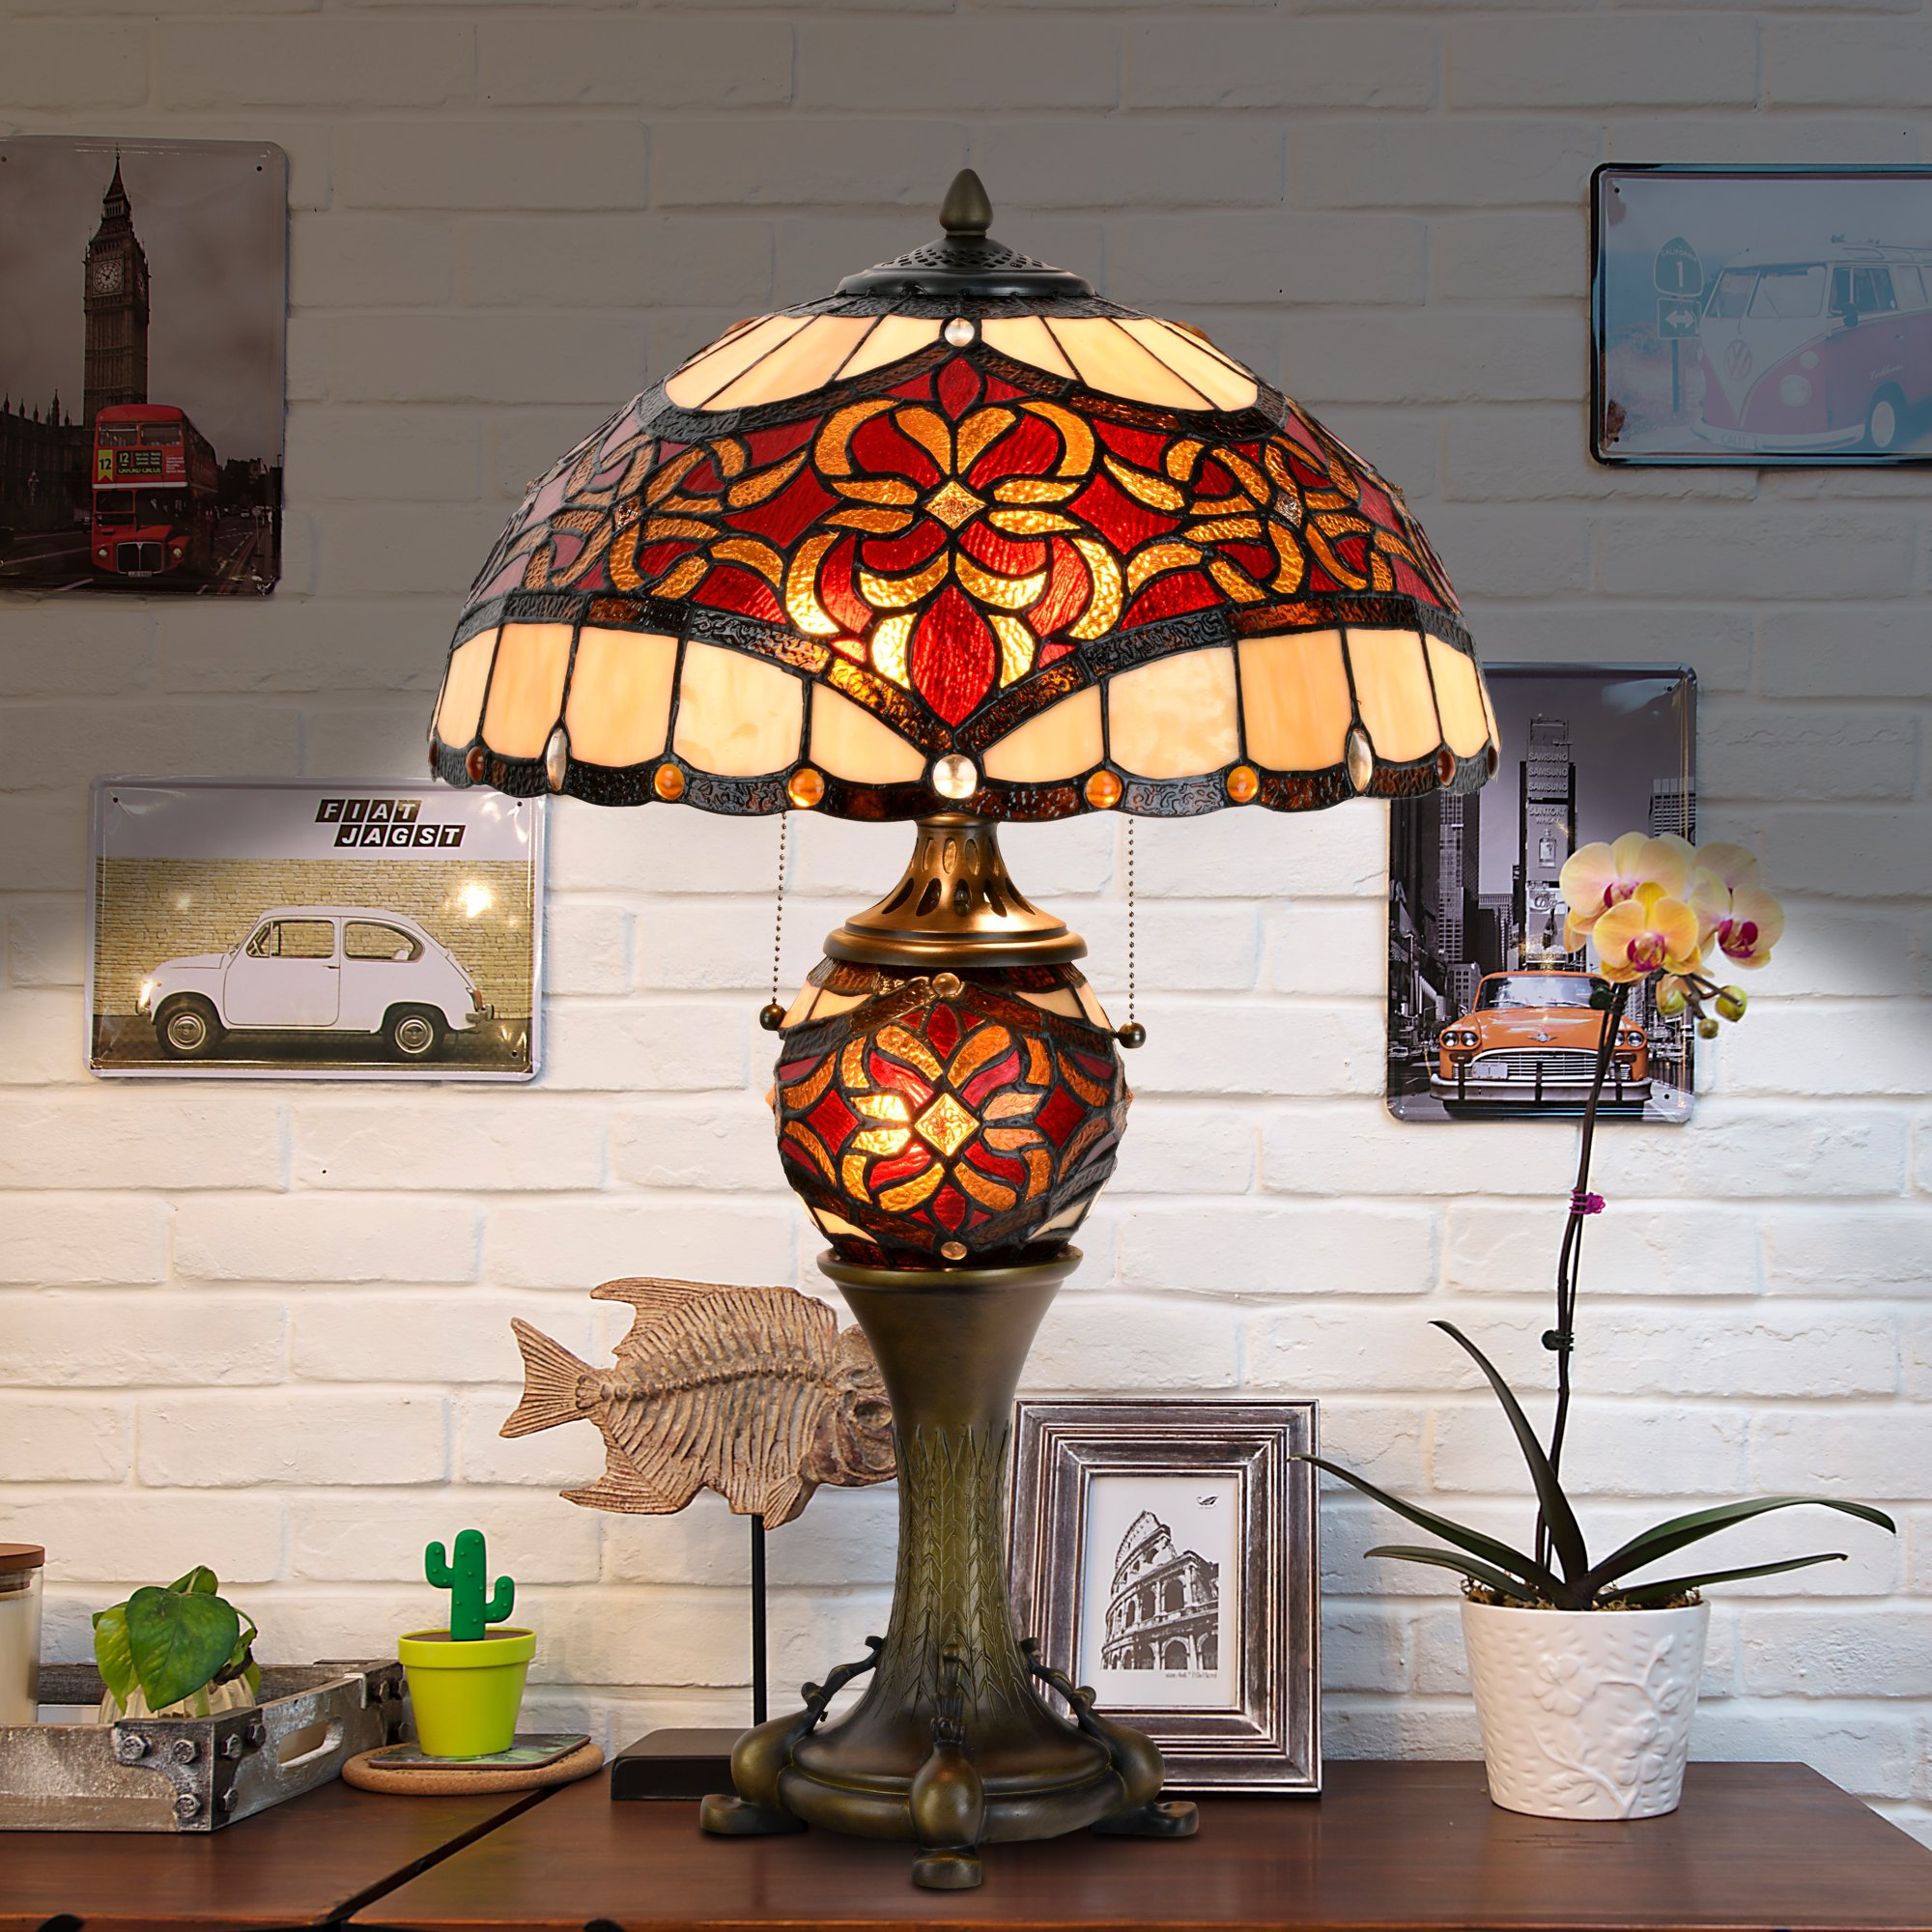 Cloud Mountain Tiffany Style 16'' Lampshade Table Lamp Baroque Desk Lamp Floral Stained Glass Double Lit Home Decor Lighting